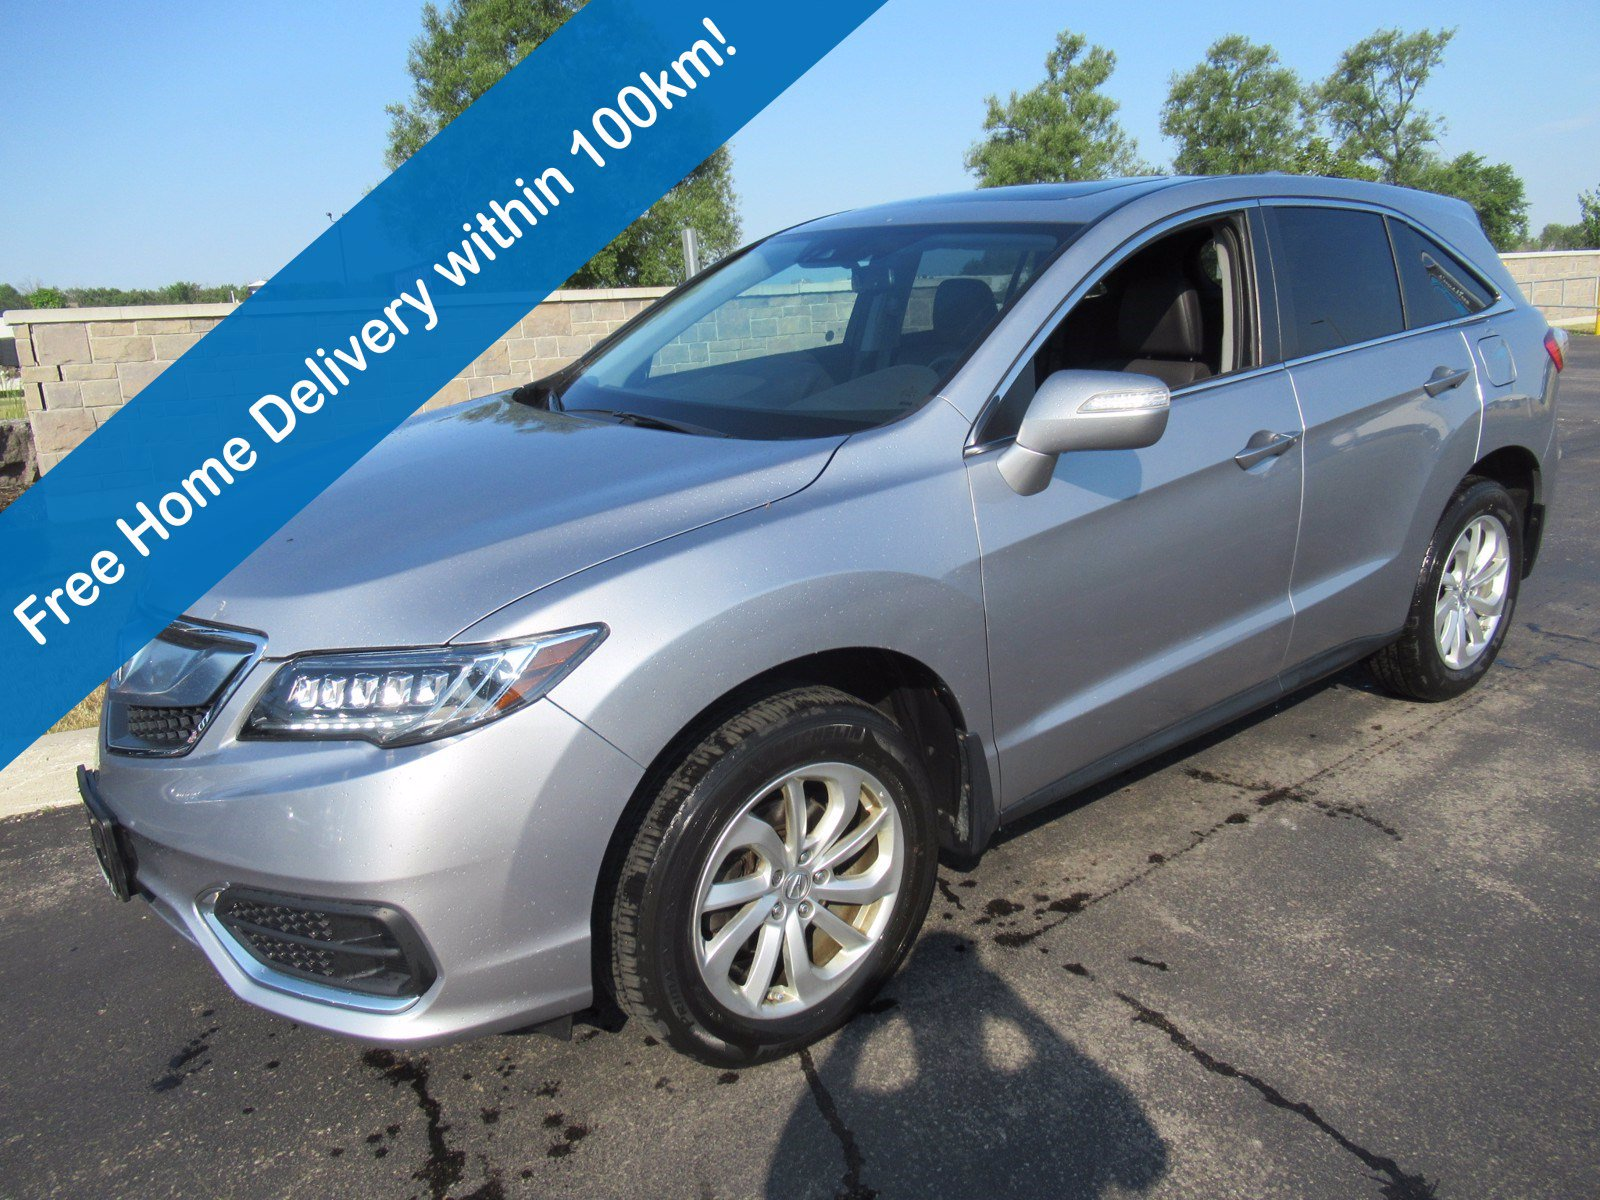 Certified Pre-Owned 2017 Acura RDX Tech Pkg AWD, Leather, Sunroof, Navigation, Power + Heated Seats & Much More!